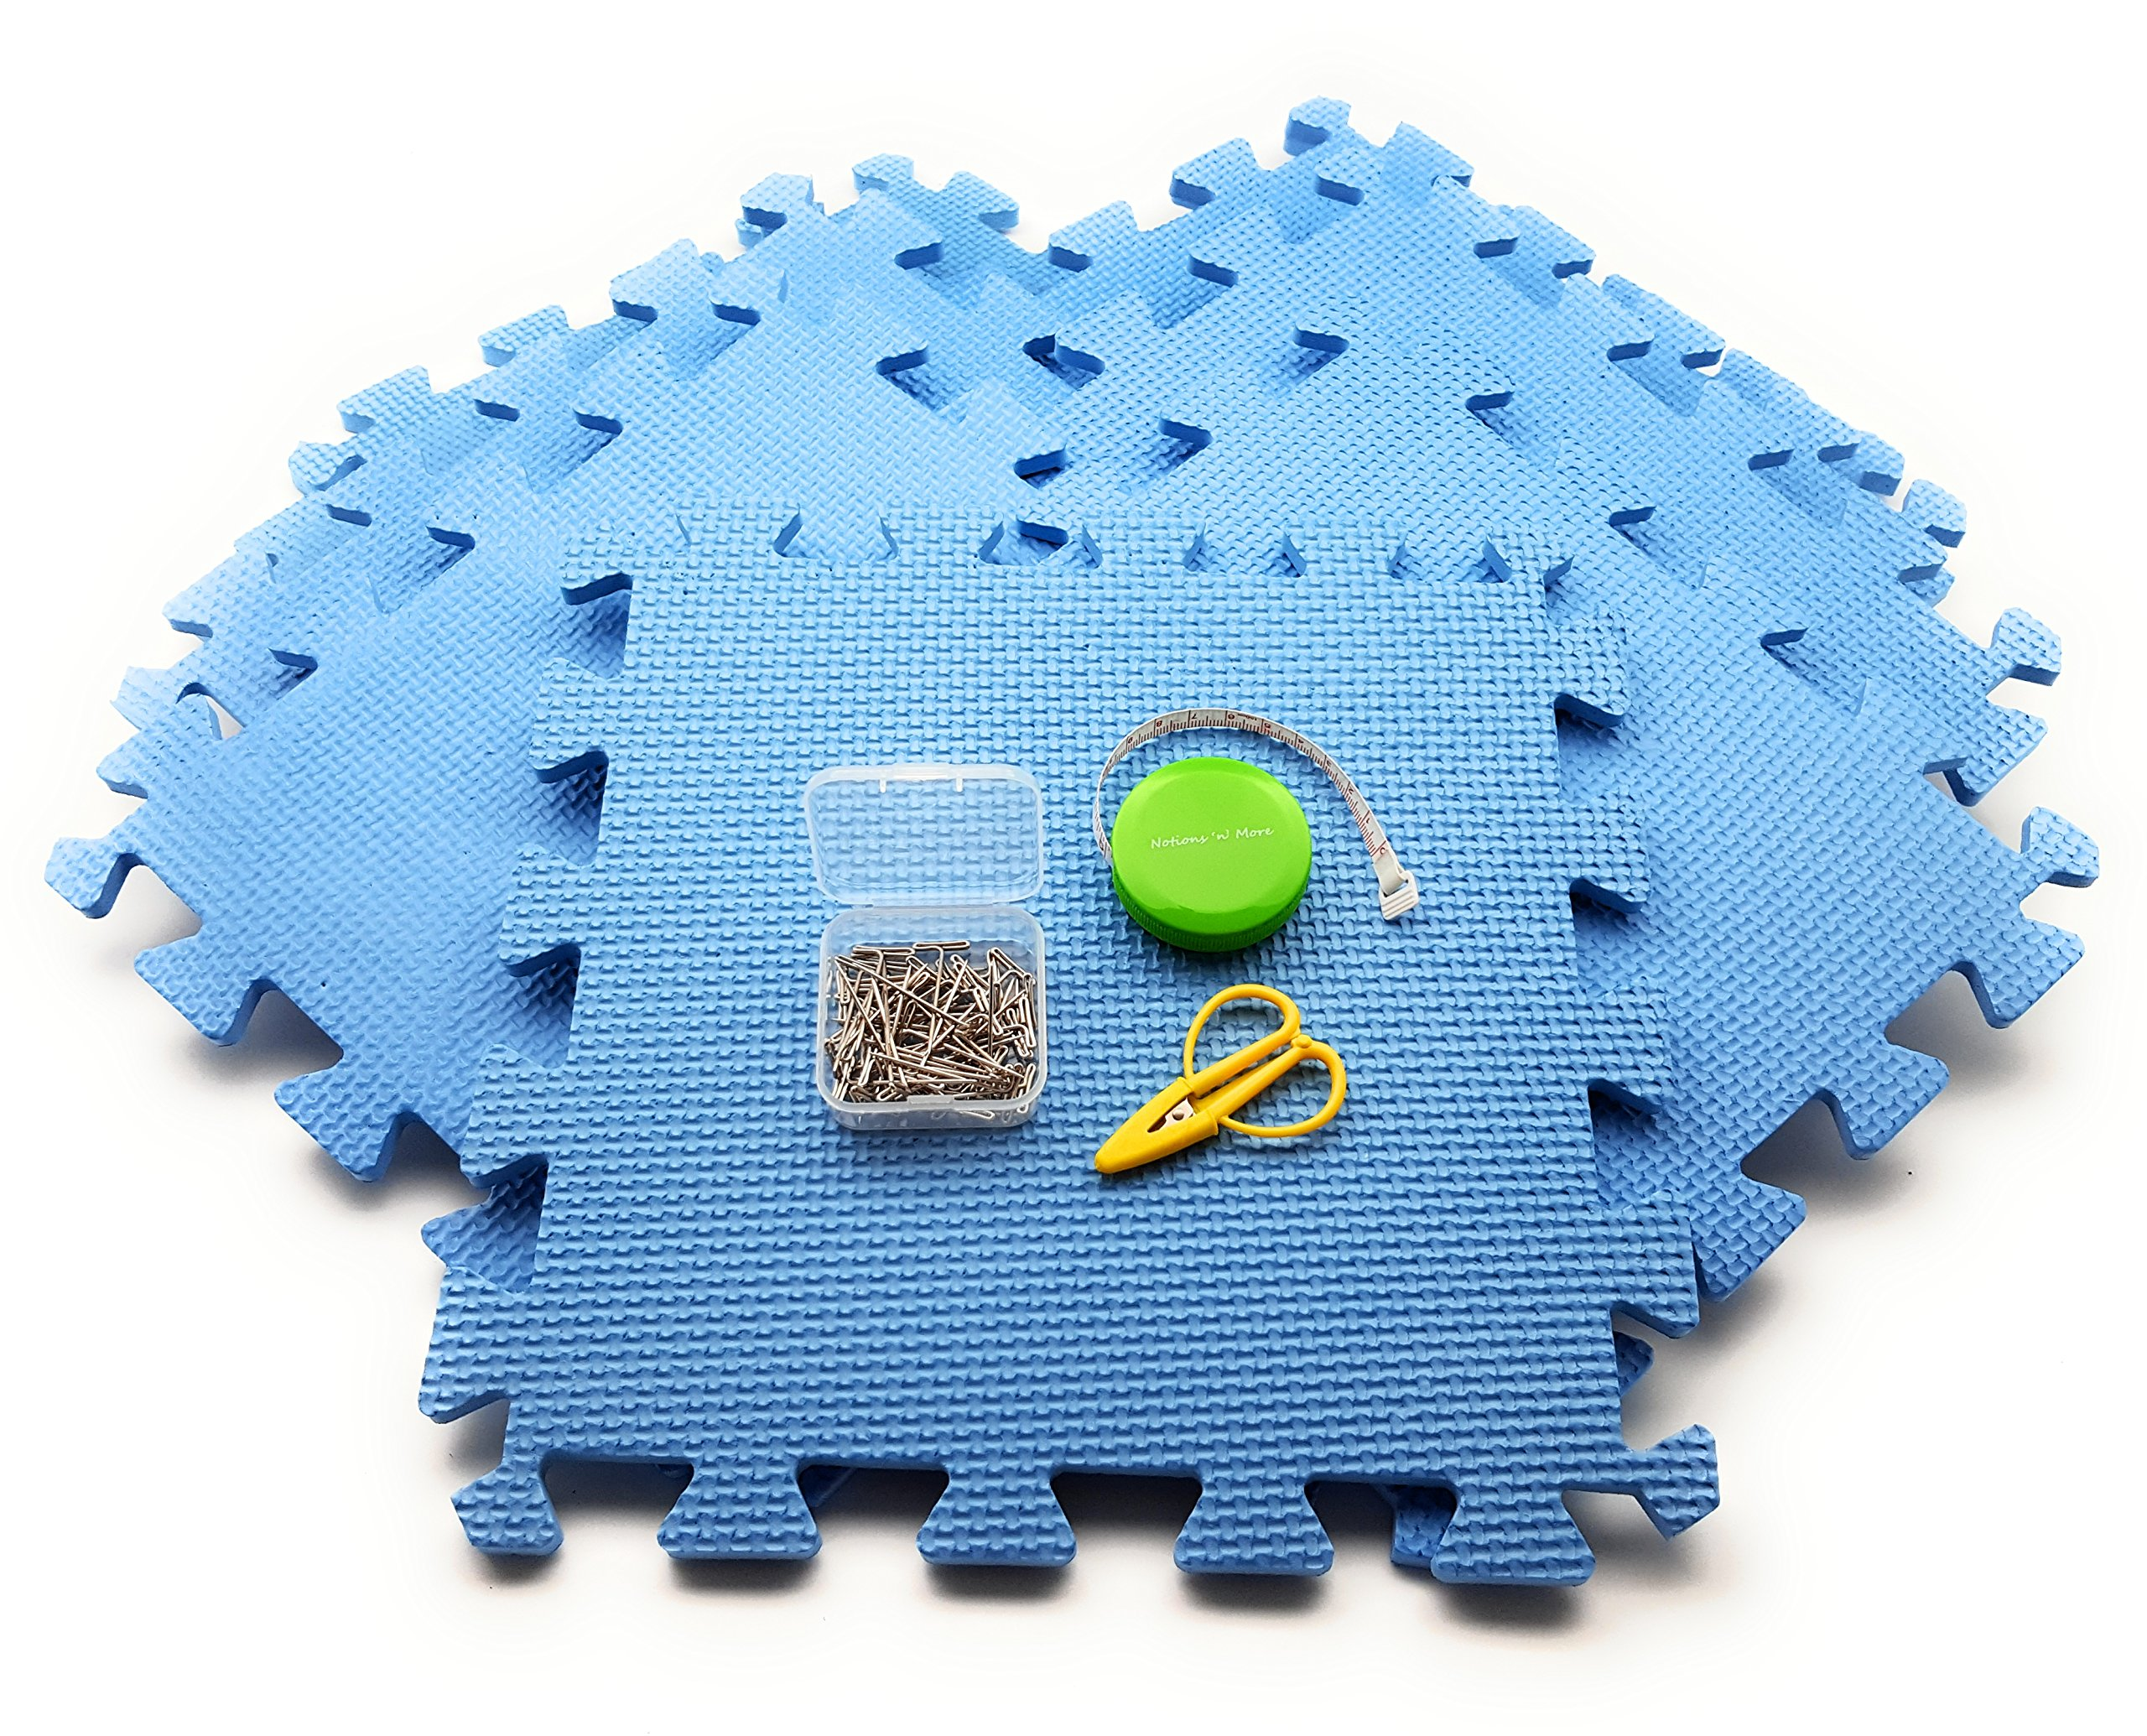 Blocking Mats Kit for knitting or crochet: 9 Foam Boards WITH ESSENTIALS PACK: Tape Measure, T-Pins 50 pack, SuperSnips Mini Scissors! NO CONFUSING GRIDLINES! by Notions 'n' More (Image #2)